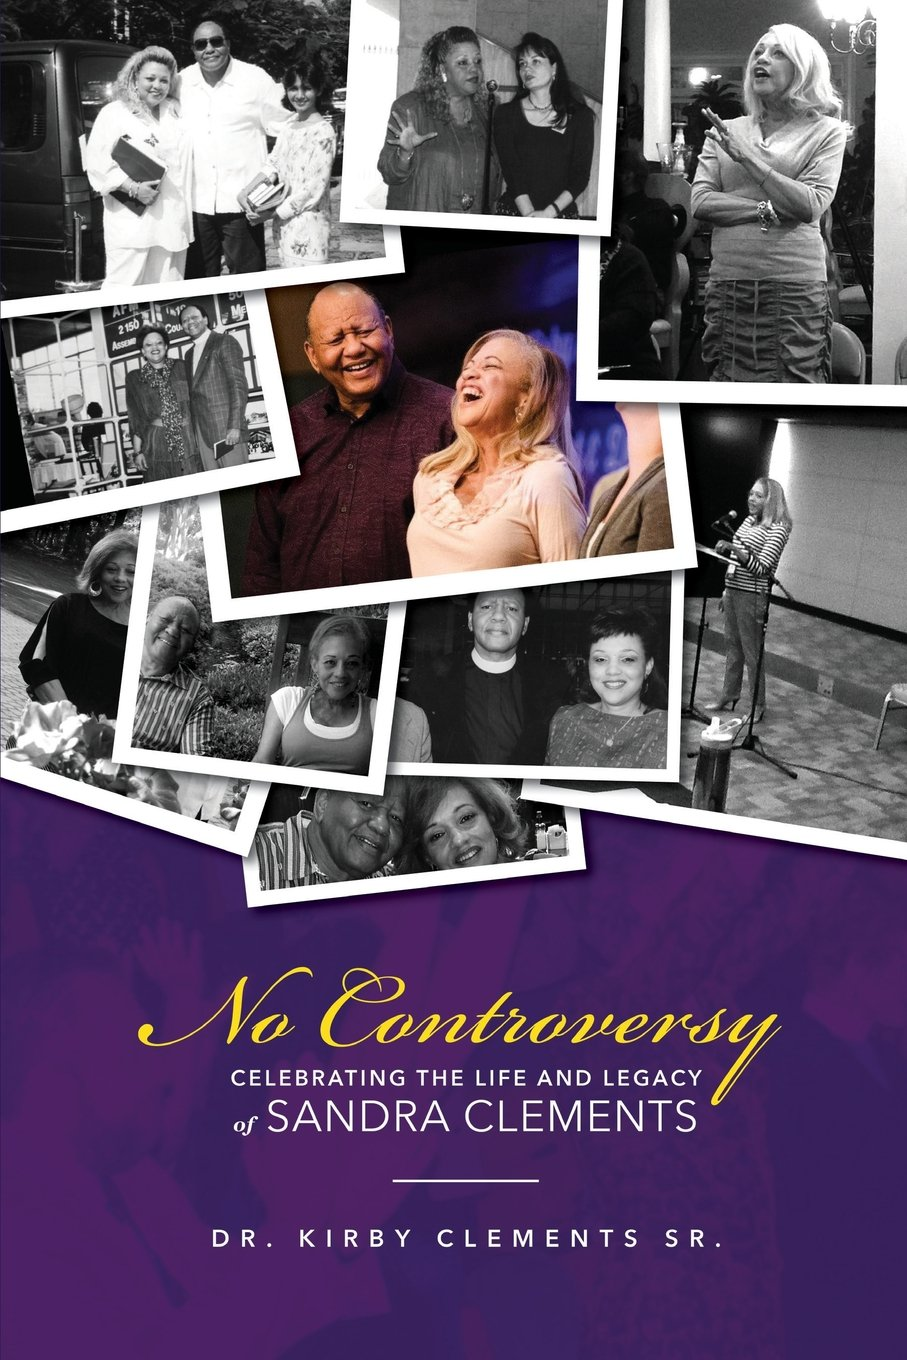 No Controversy: Celebrating the Life and Legacy of Sandra Clements pdf